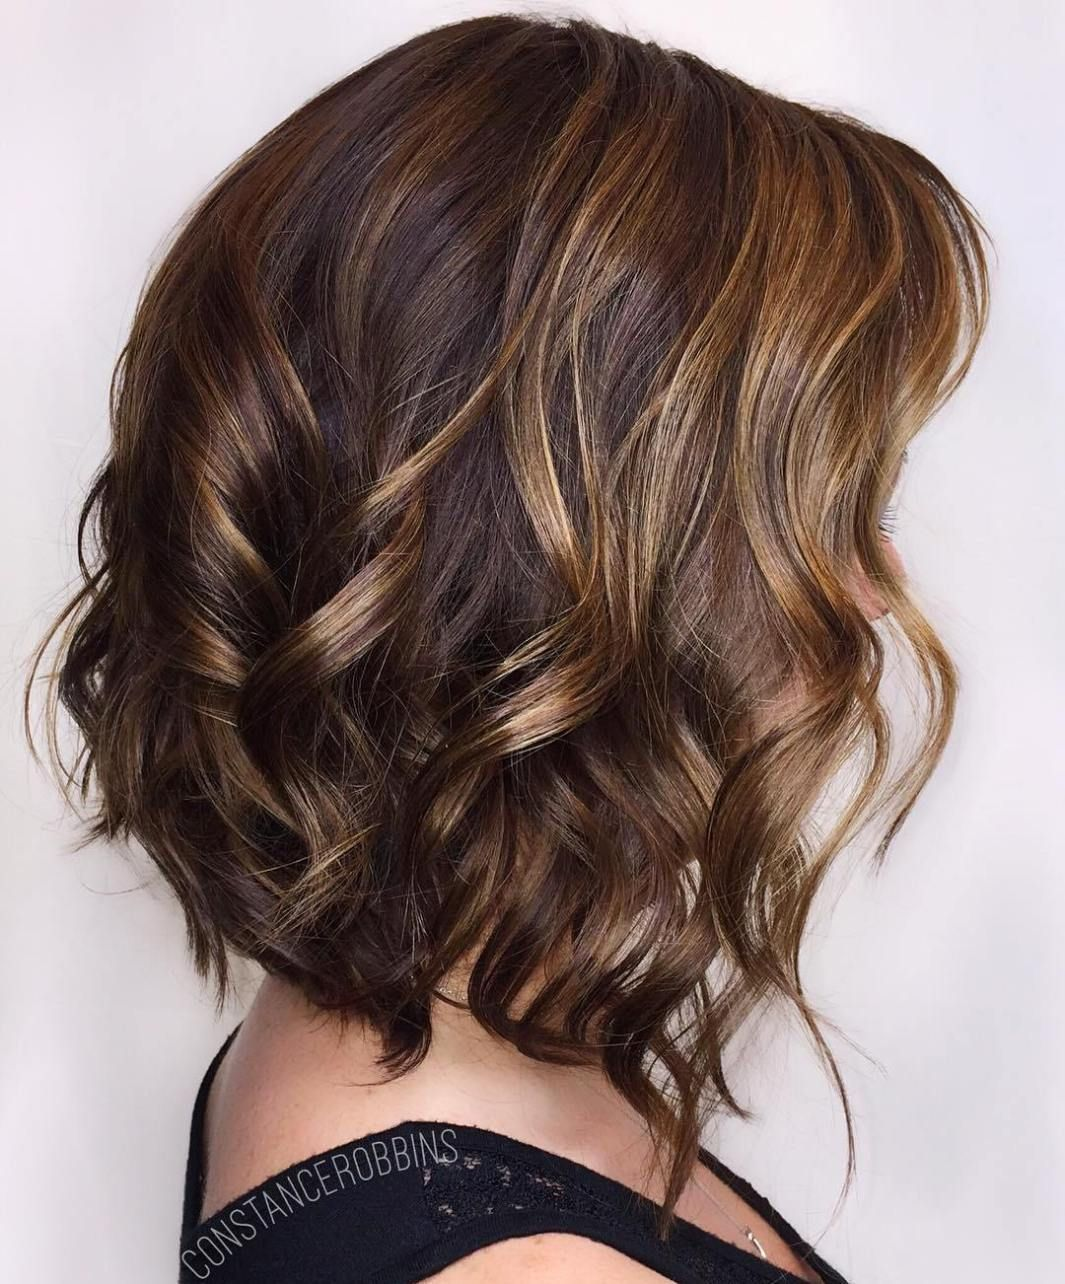 45 Ideas For Light Brown Hair With Highlights And Lowlights Honey